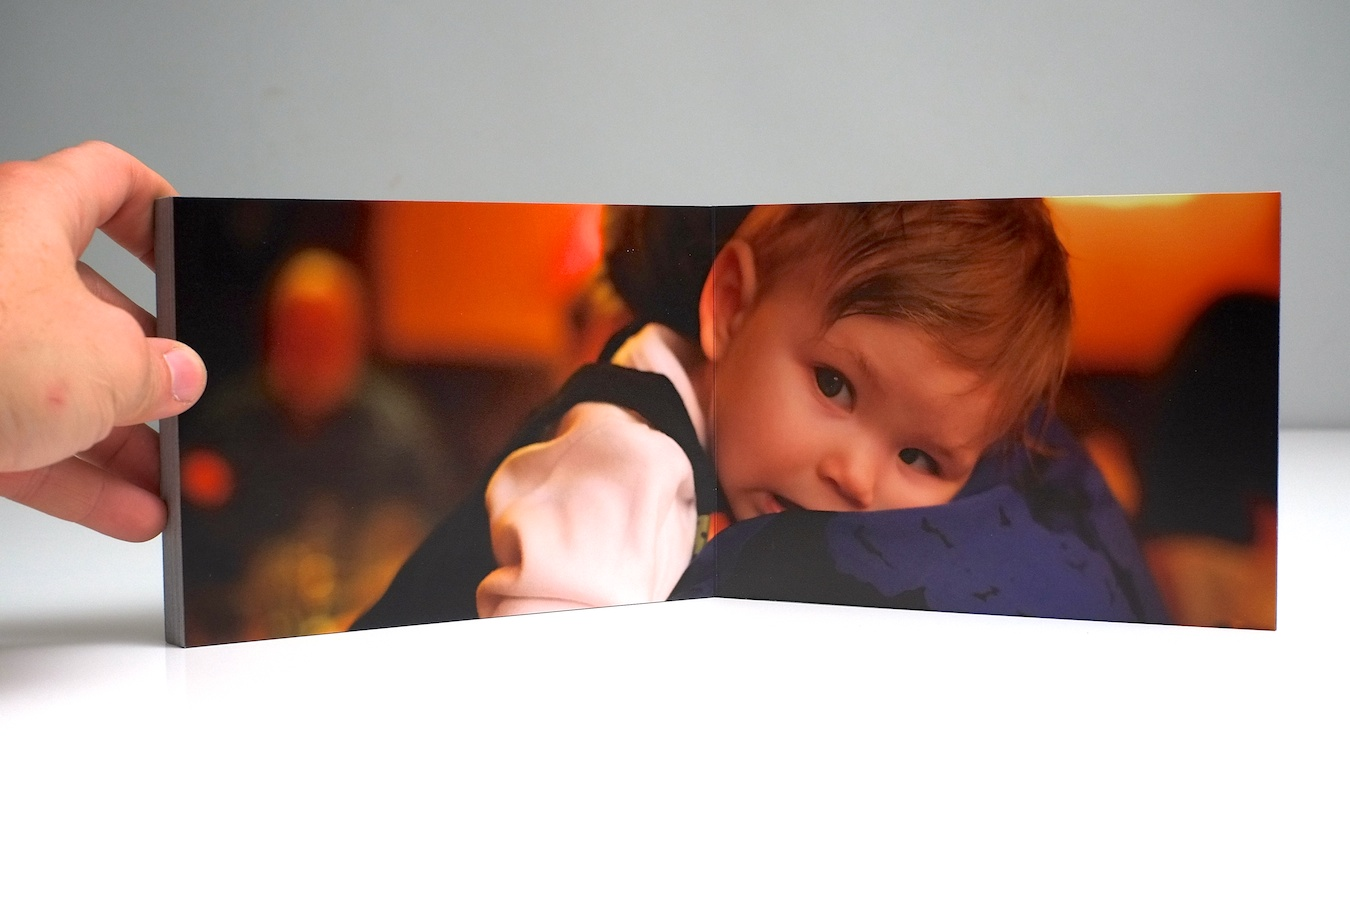 The Little Black Book's unique lay-flat binding allows photos to spread across the entire page beautifully